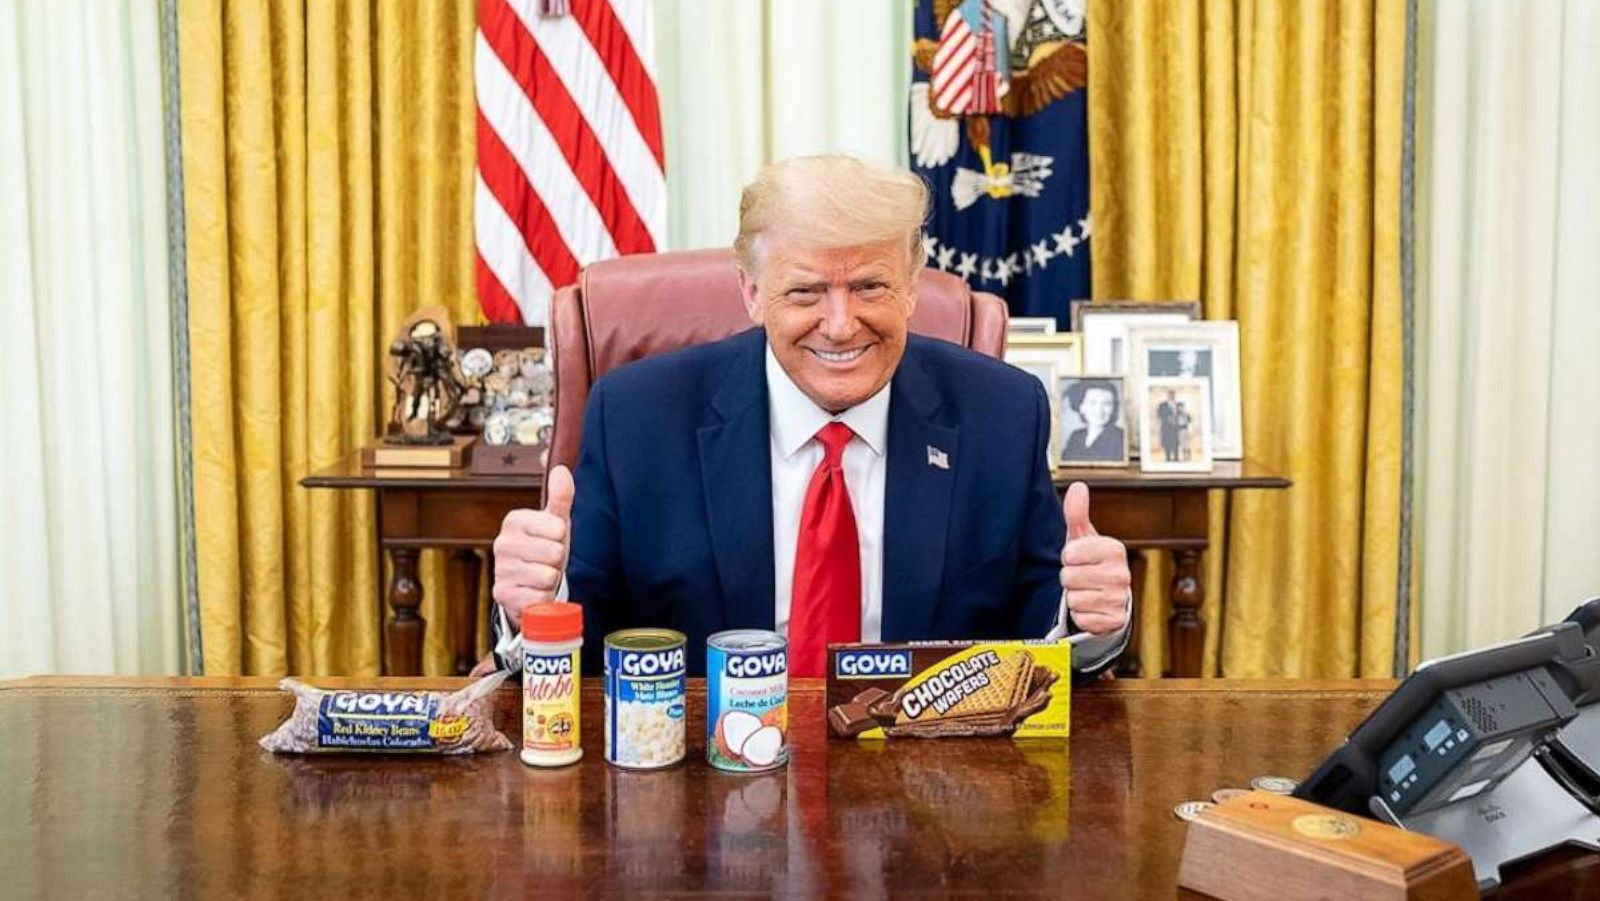 """""""donald-trumps-niece-slams-him-for-posing-with-goya-products-amid-the-pandemic-140000-americans-dead-but-hes-hawking-beans"""""""